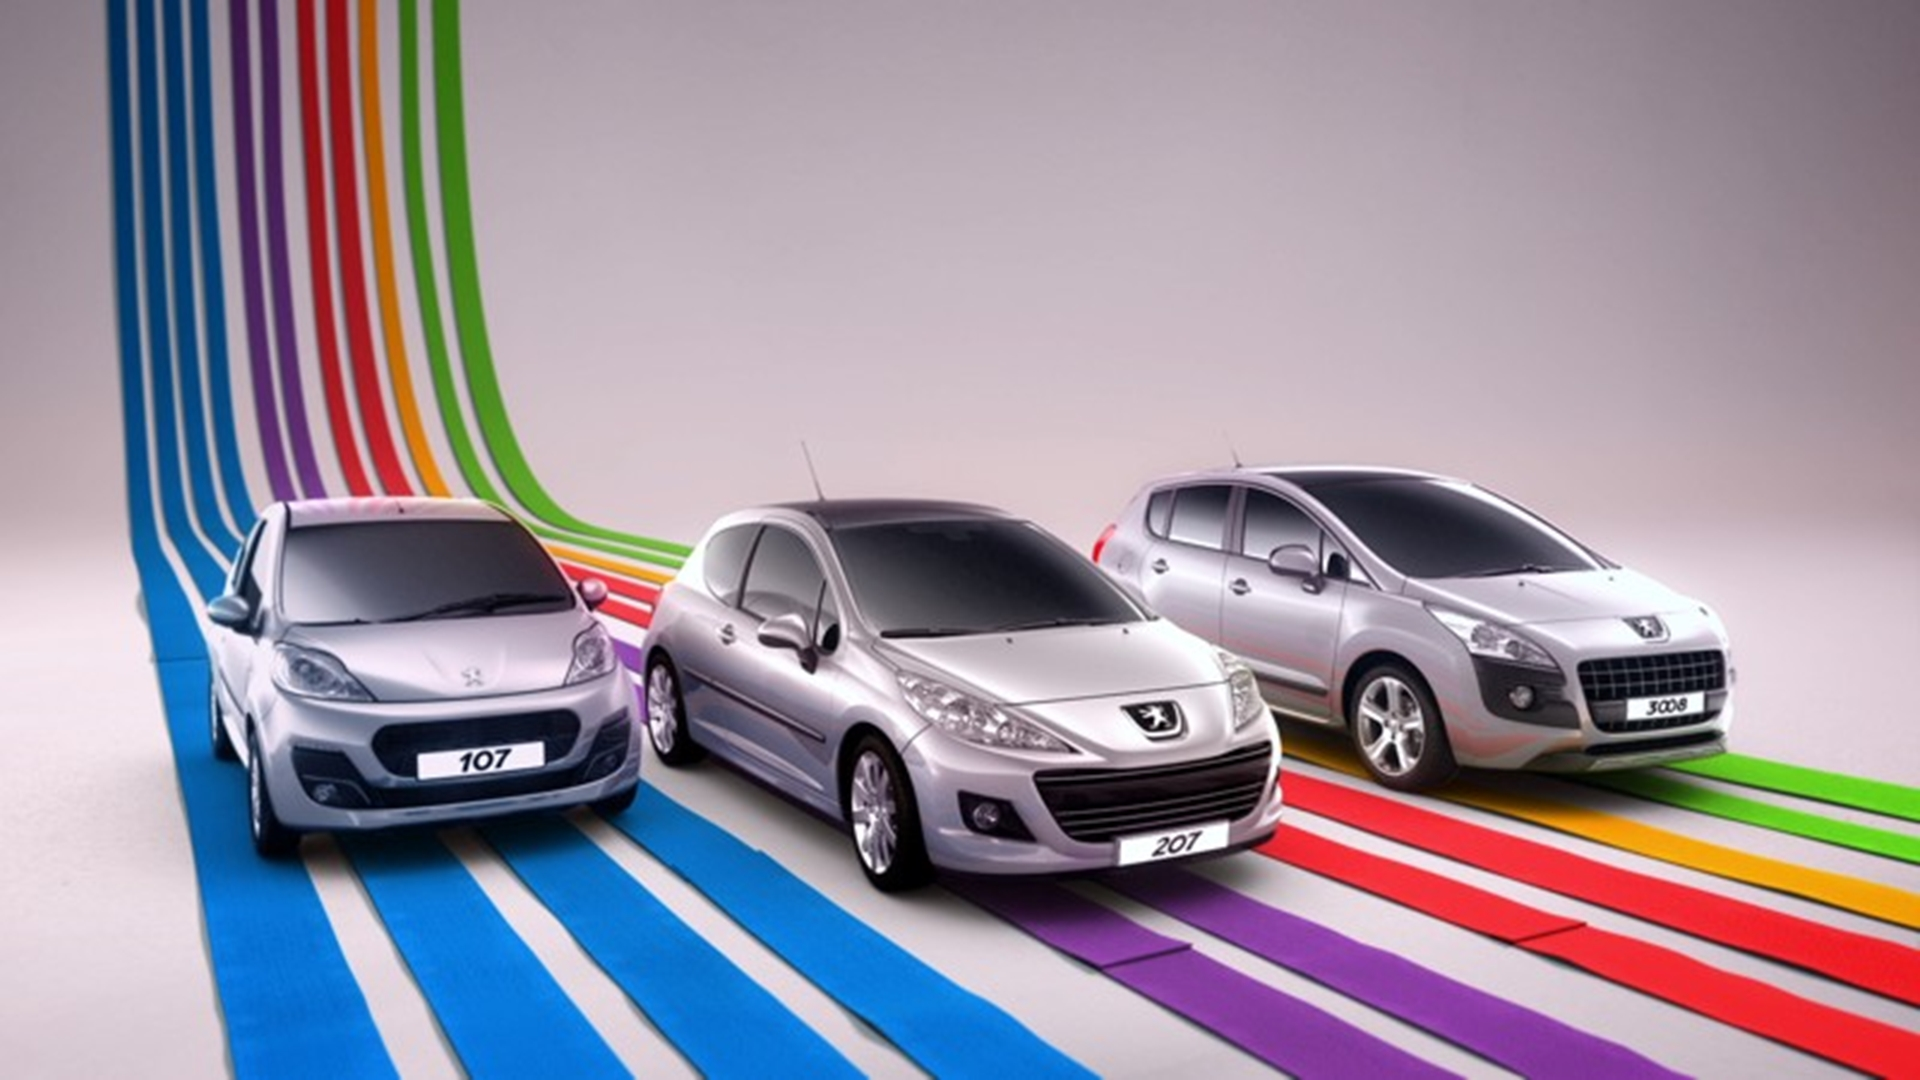 Peugeot to celebrate 'New Car Joy' with 'Drive Away Happy'